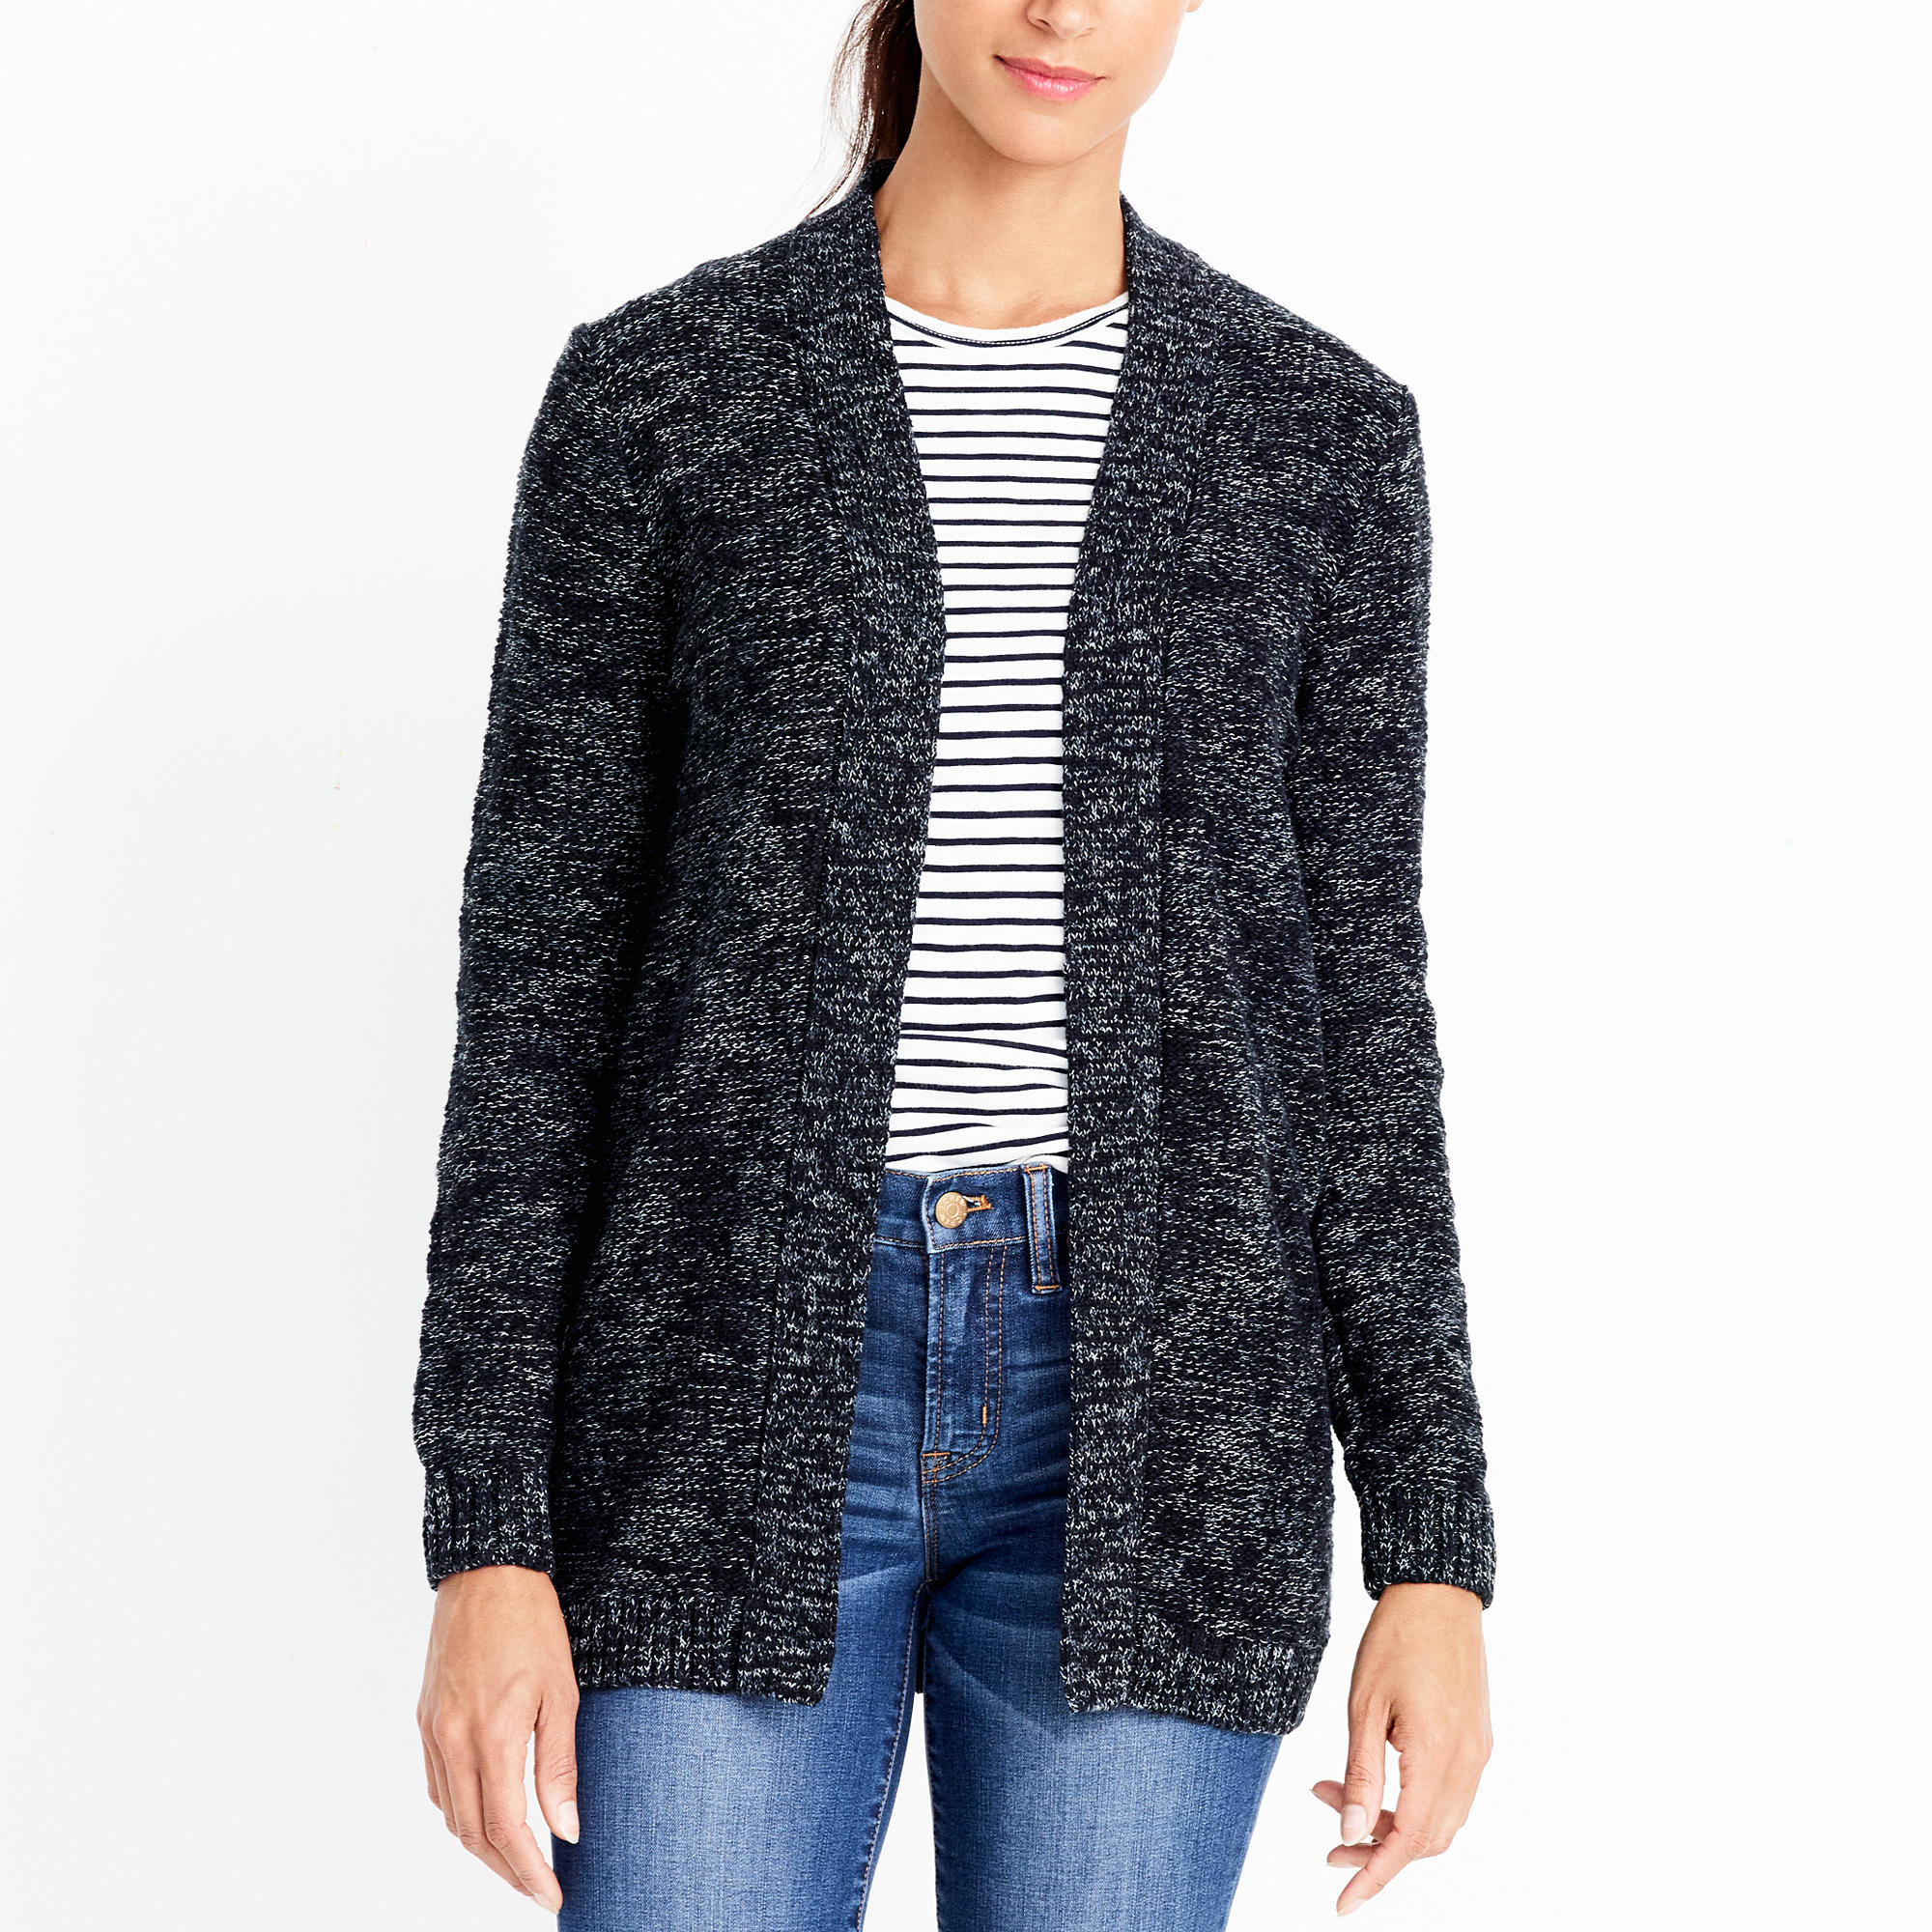 Open cardigan sweater : FactoryWomen cardigans & shells | Factory